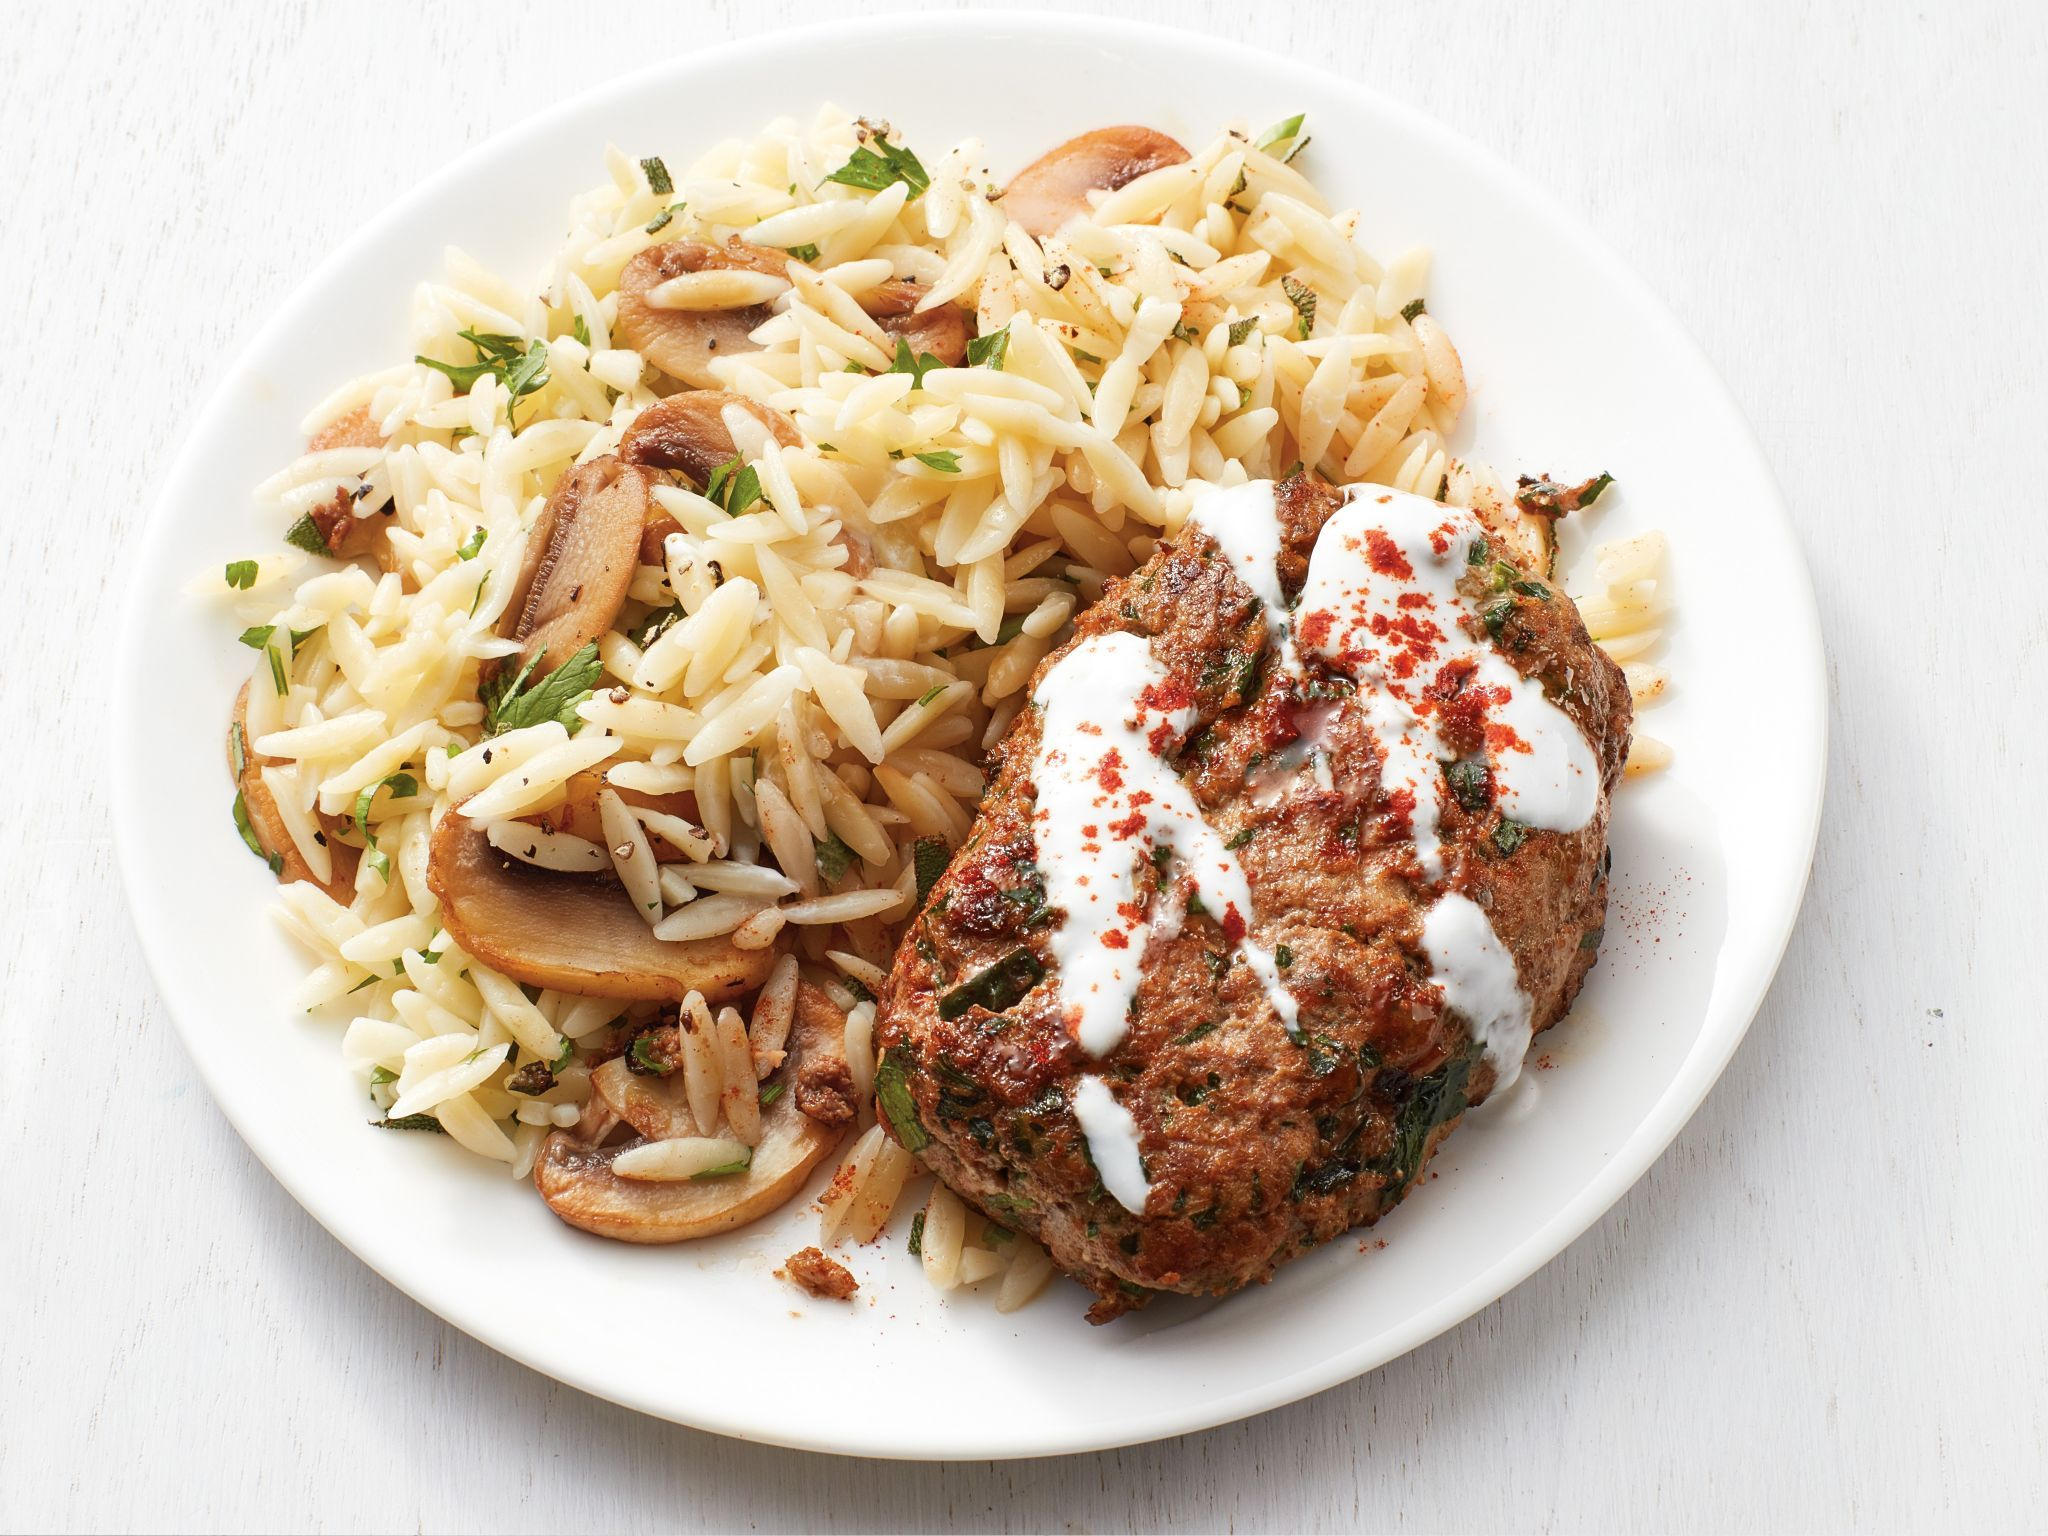 Mini meatloaves with mushroom herb orzo recipe orzo recipes mini meatloaves with mushroom herb orzo orzo recipeslamb recipesmeat recipesdinner recipesdinner ideashealthy recipesfood network forumfinder Image collections